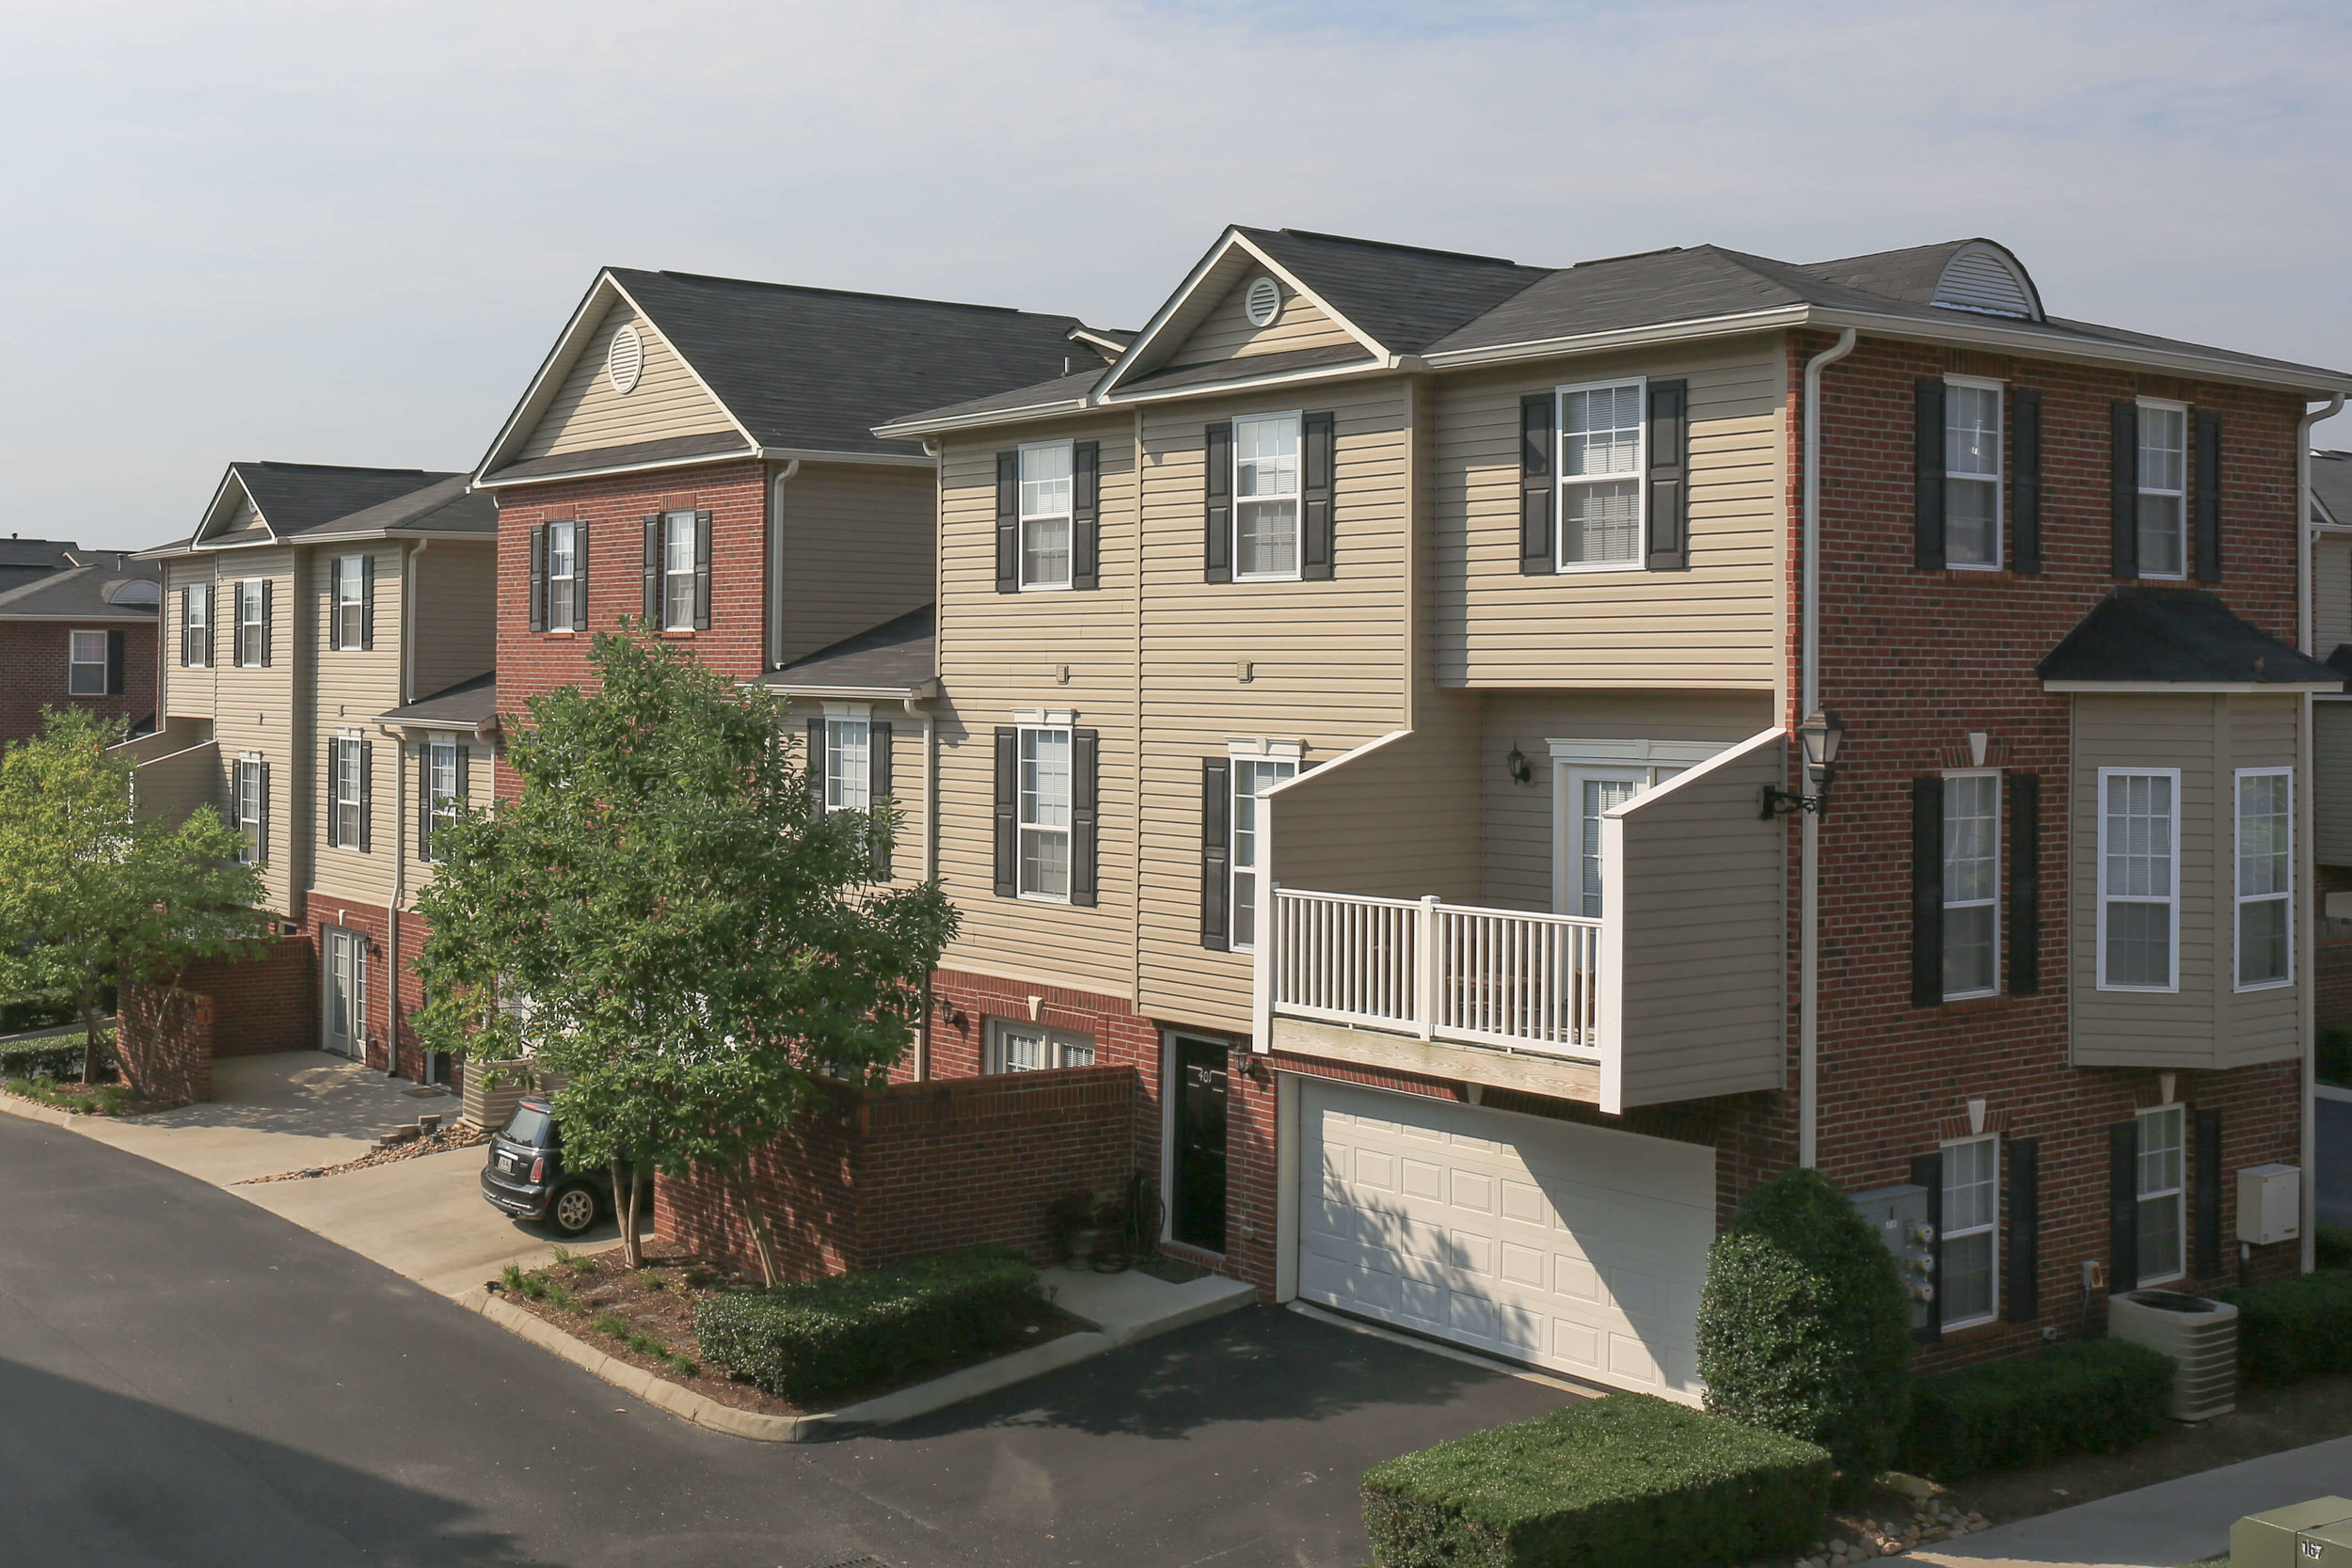 Luxury townhomes and apartments for rent in Knoxville, TN, with attached garages and hardwood-style floors.